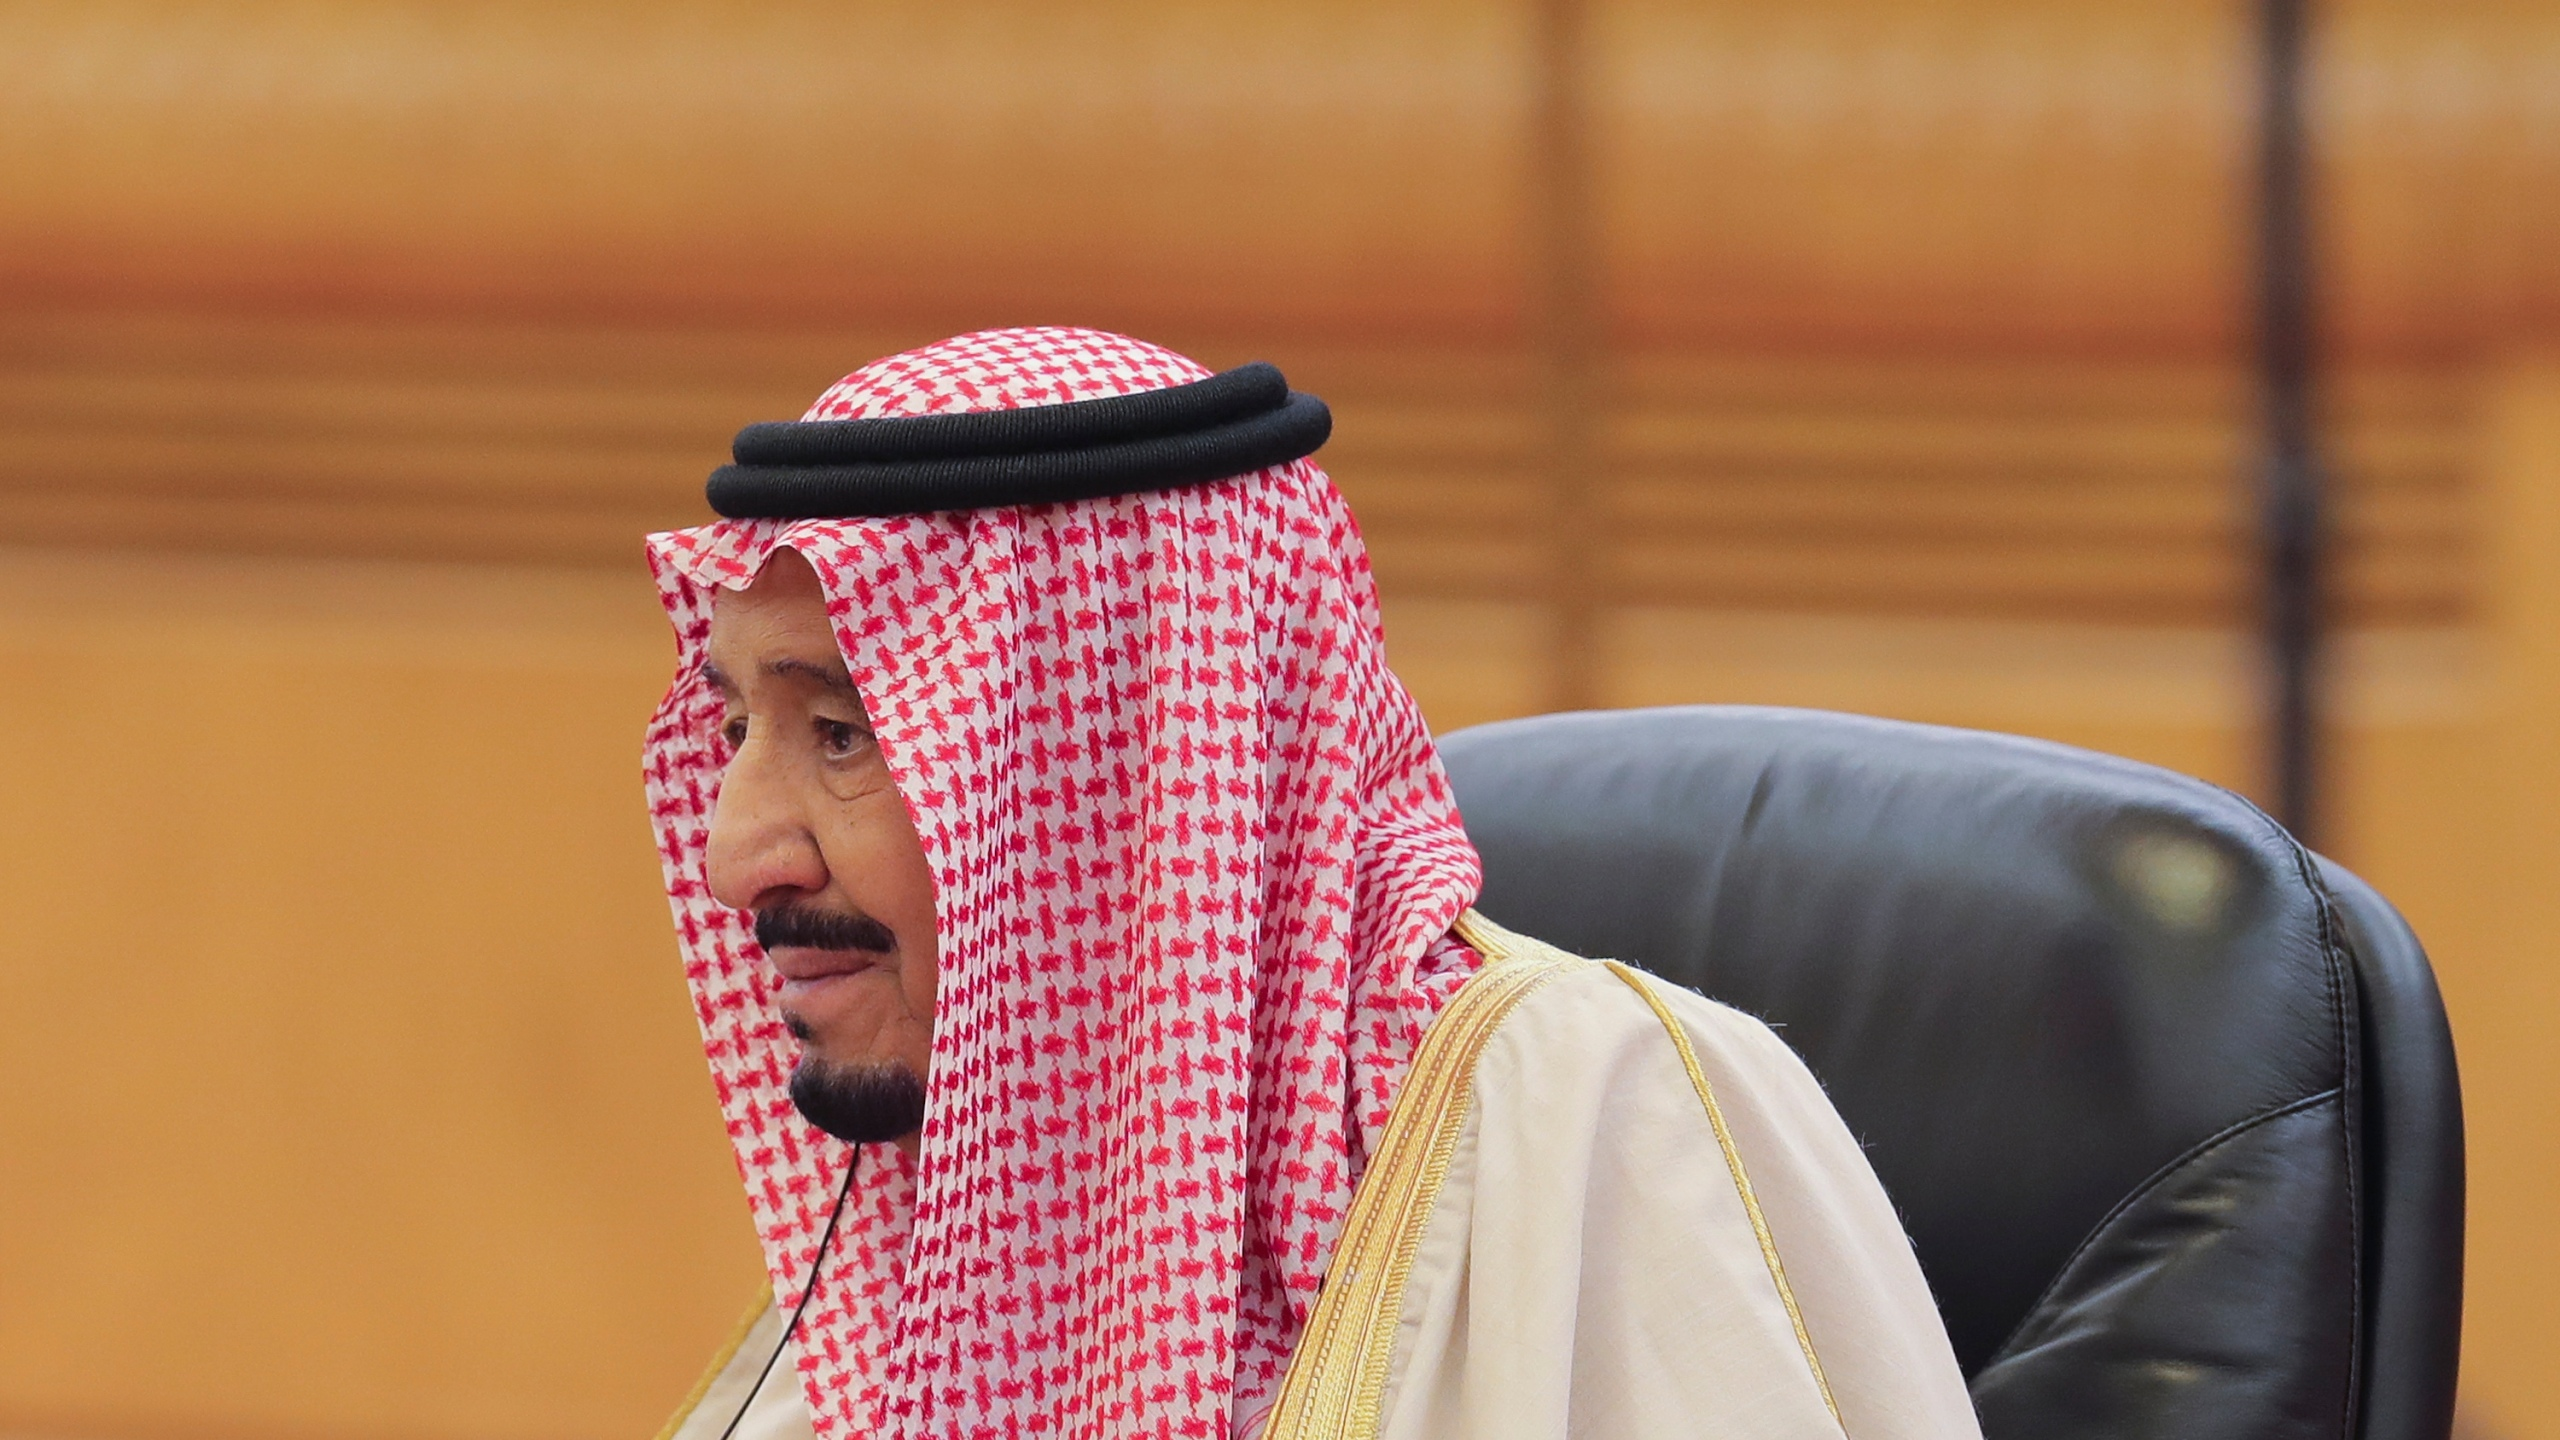 Saudi Arabia's King Salman bin Abdulaziz Al Saud during his meeting with Chinese President Xi Jinping (not pictured) at the Great Hall of the People on March 16, 2017, in Beijing, China. (Credit: Lintao Zhang/Pool/Getty Images)